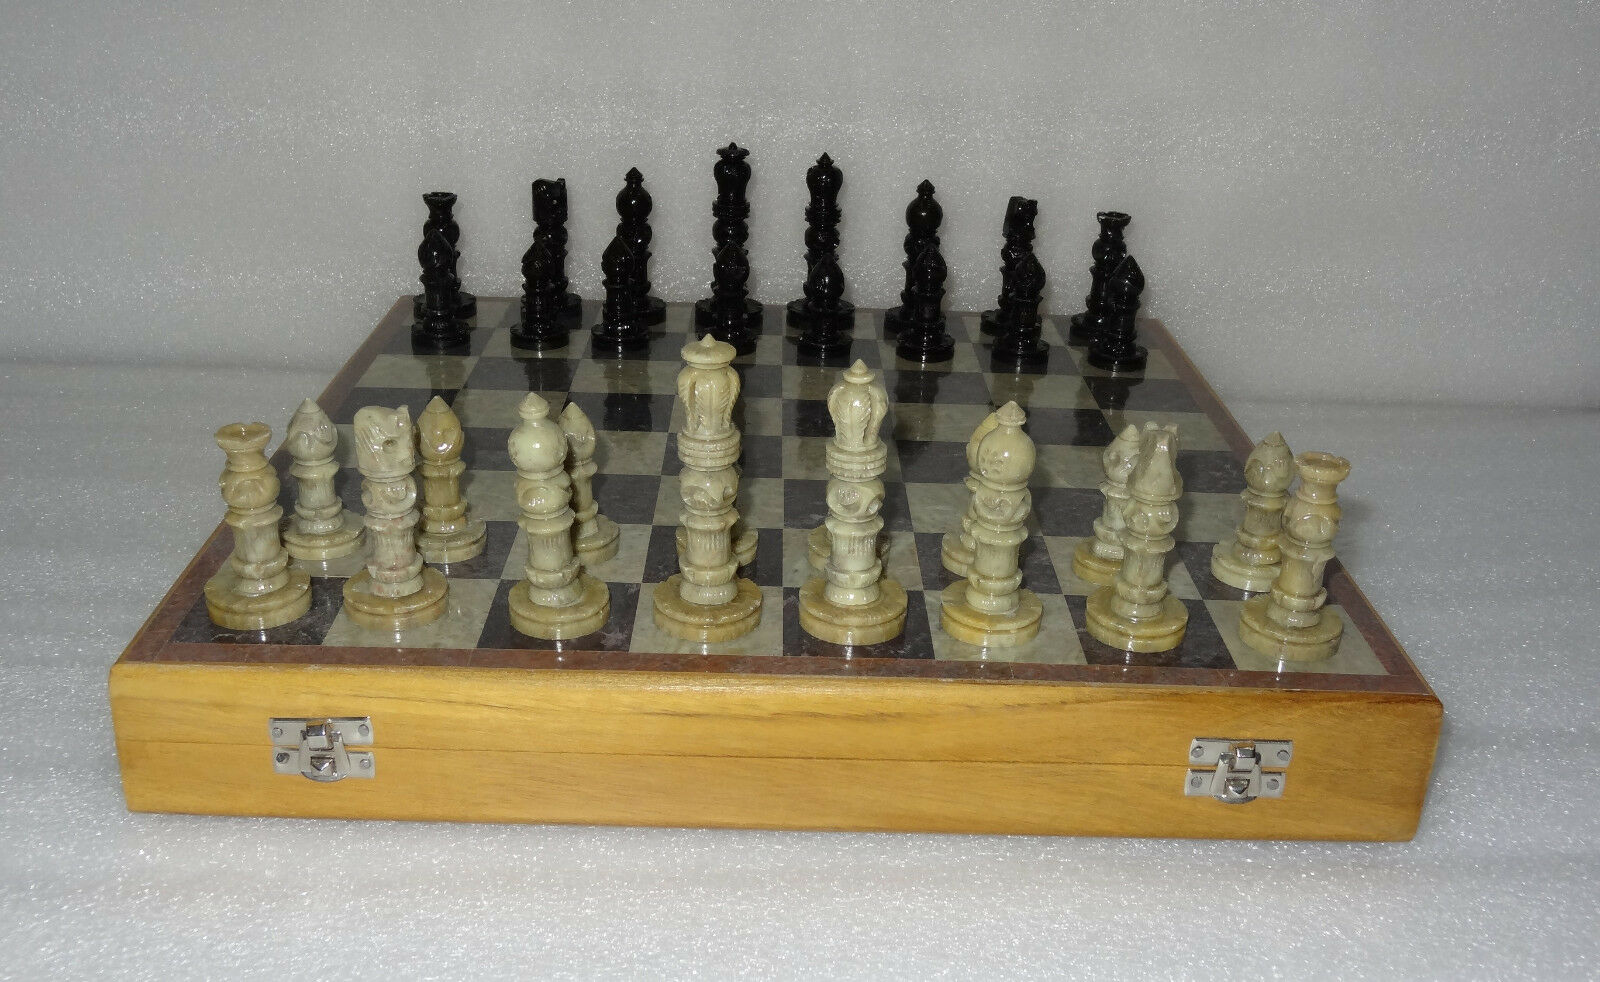 14  Marble Indian Wooden Wooden Wooden Chess Set Ebony stone pieces Play Board Decor Gifts 0094f0